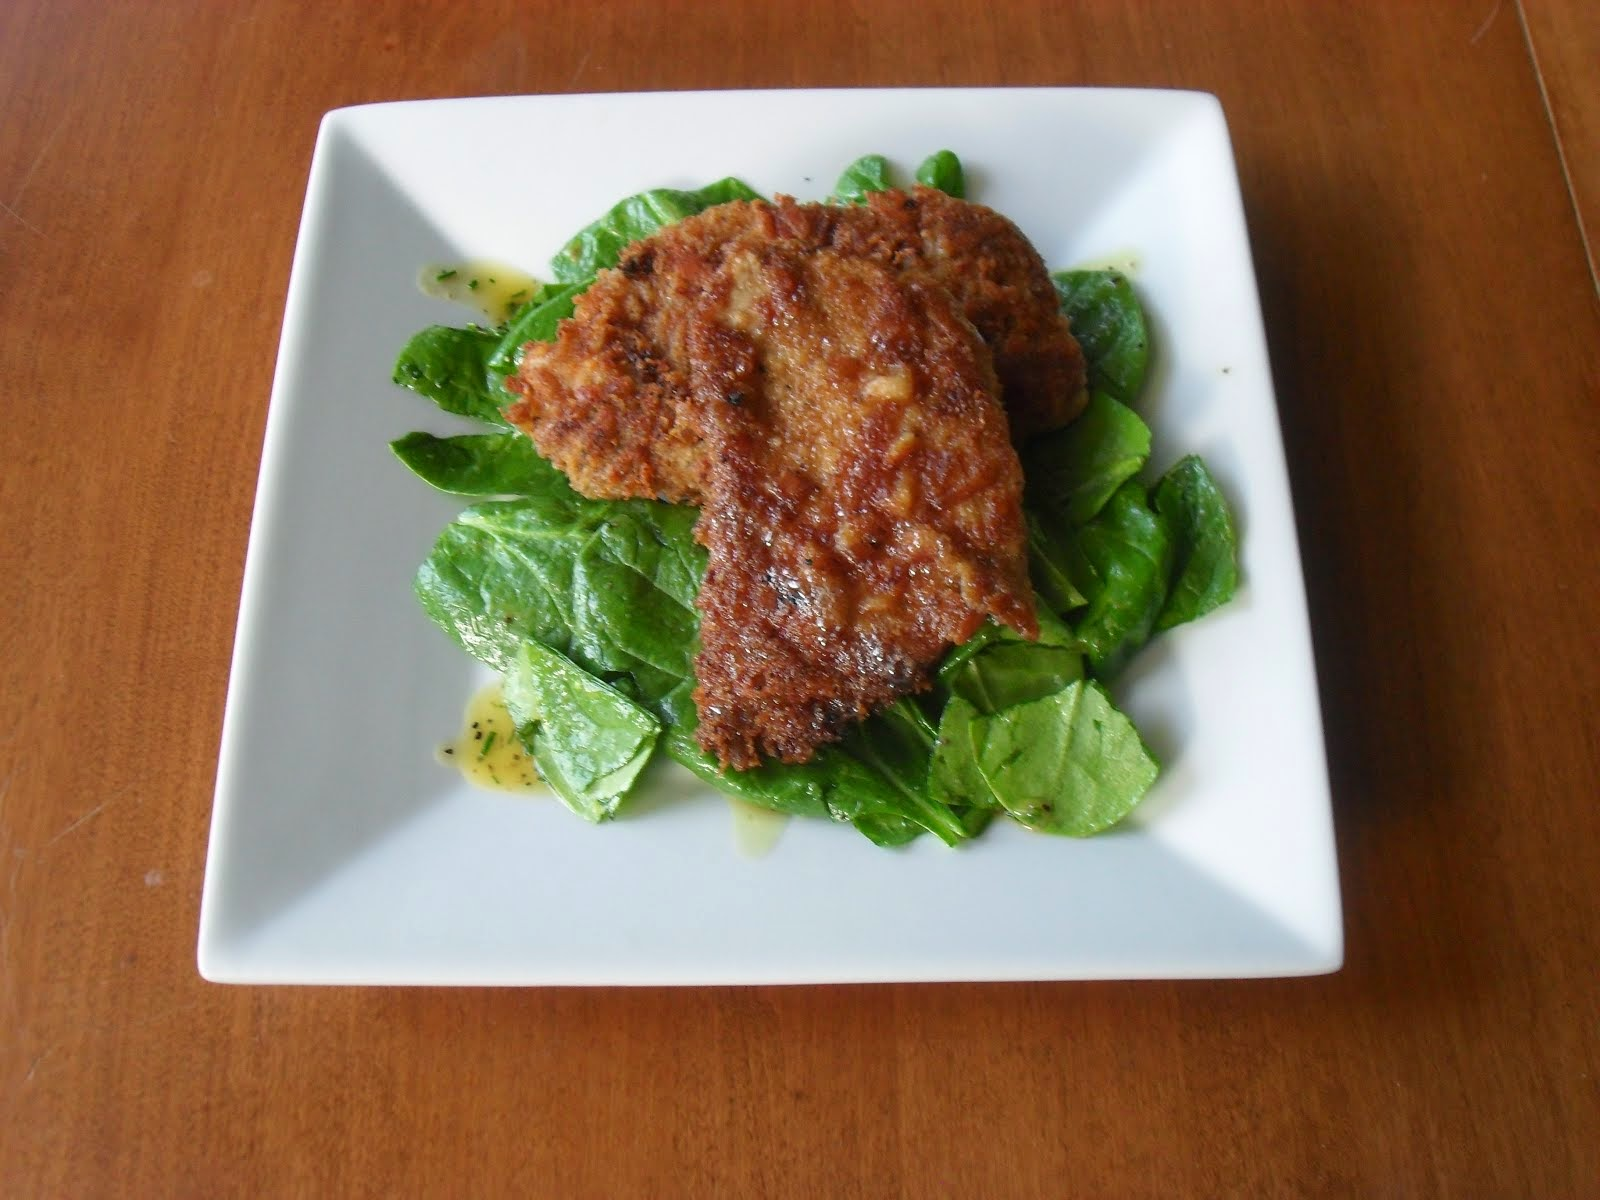 Cutlet Coated in Aged Jack Cheese Crust